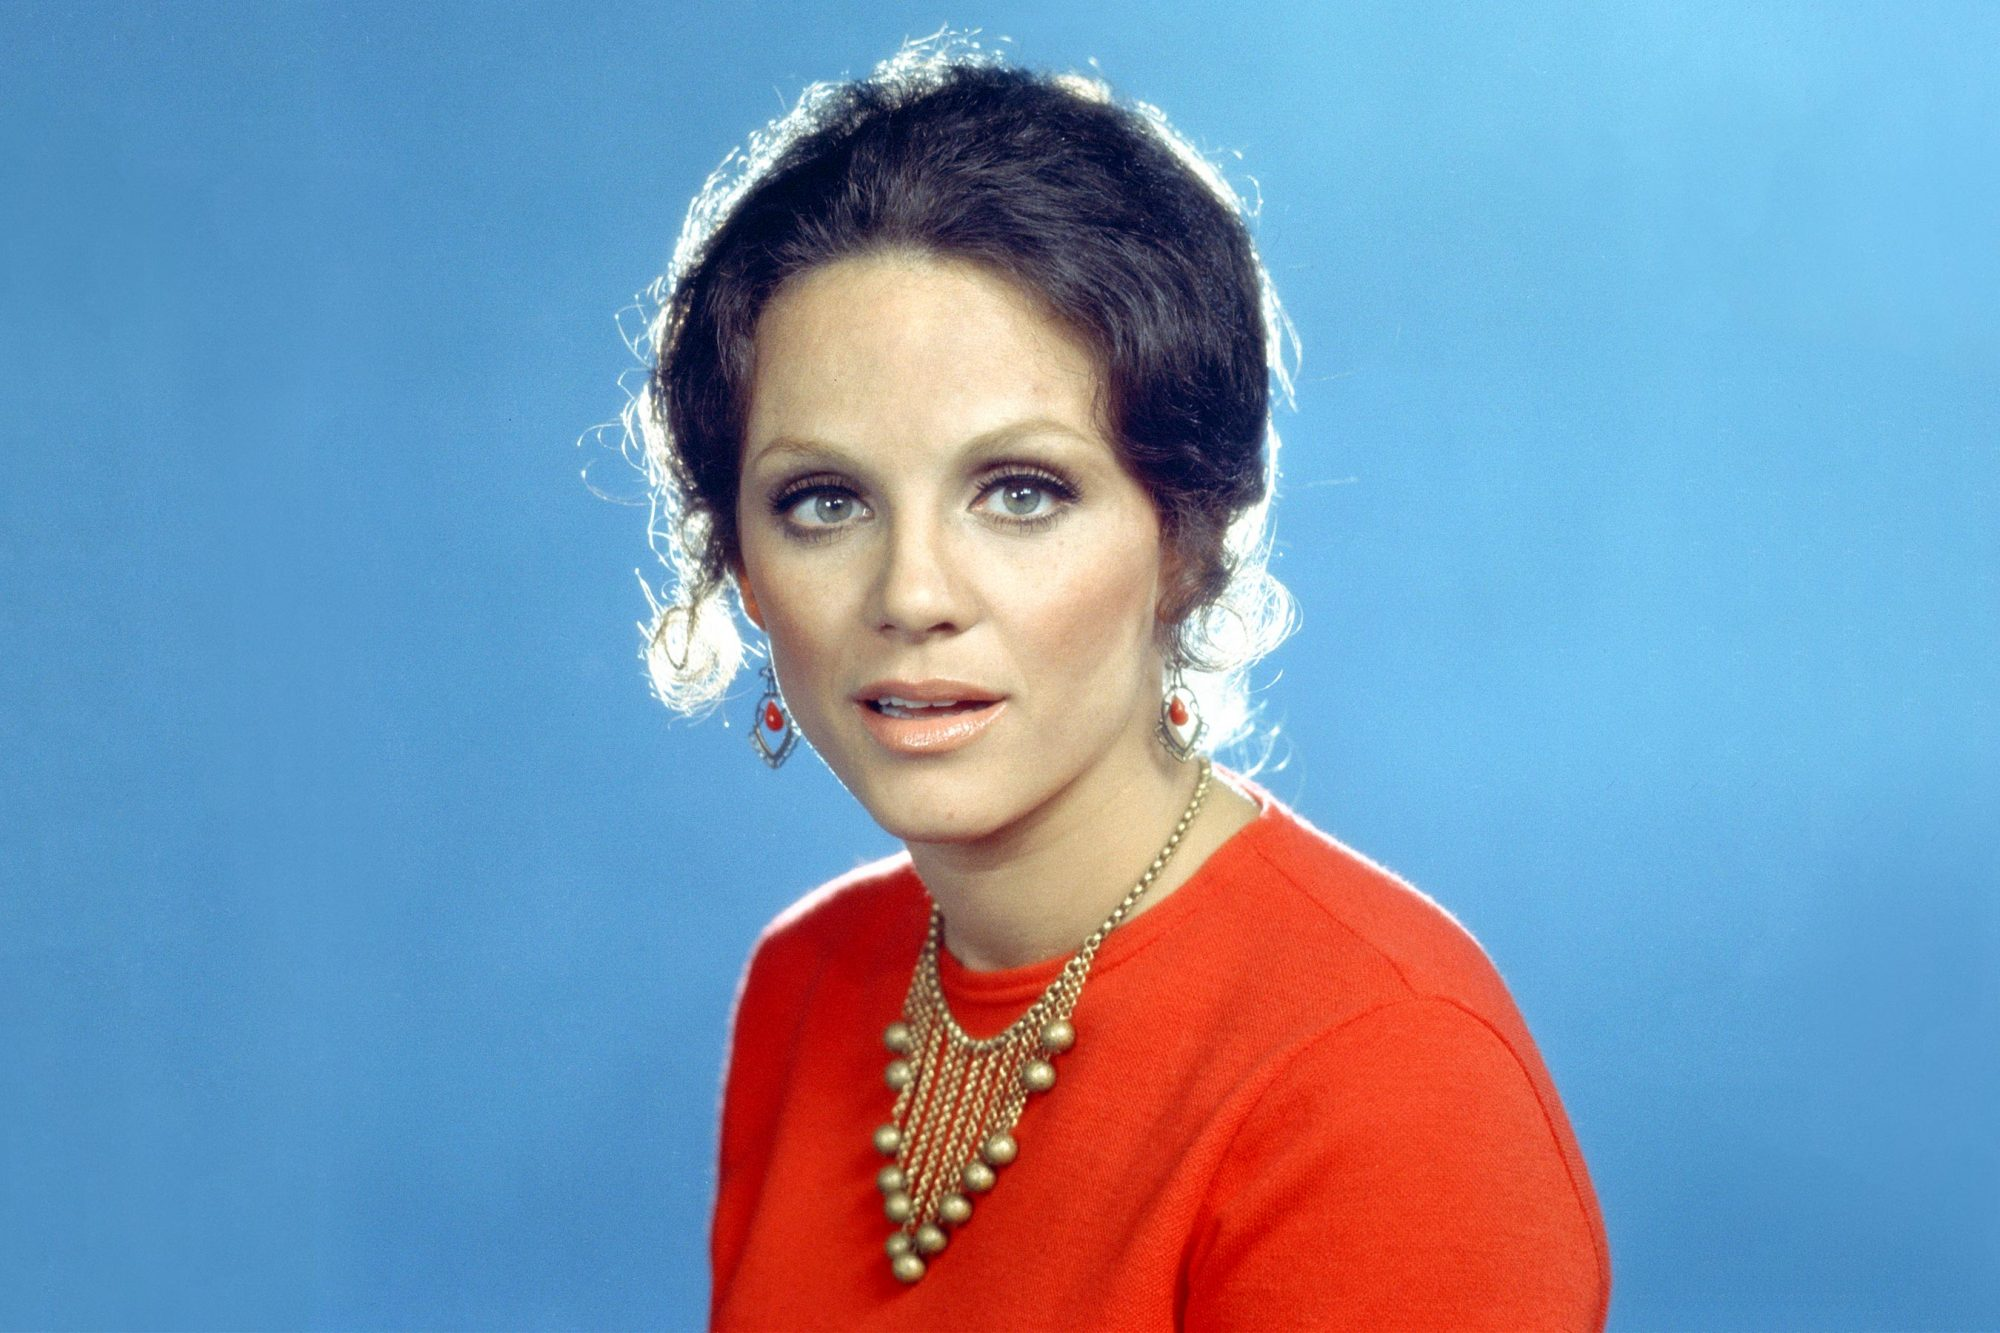 LOS ANGELES - JANUARY 1: The Mary Tyler Moore Show: Valerie Harper who portrays Rhoda Morgenstern. Image dated 1971. (Photo by CBS via Getty Images)